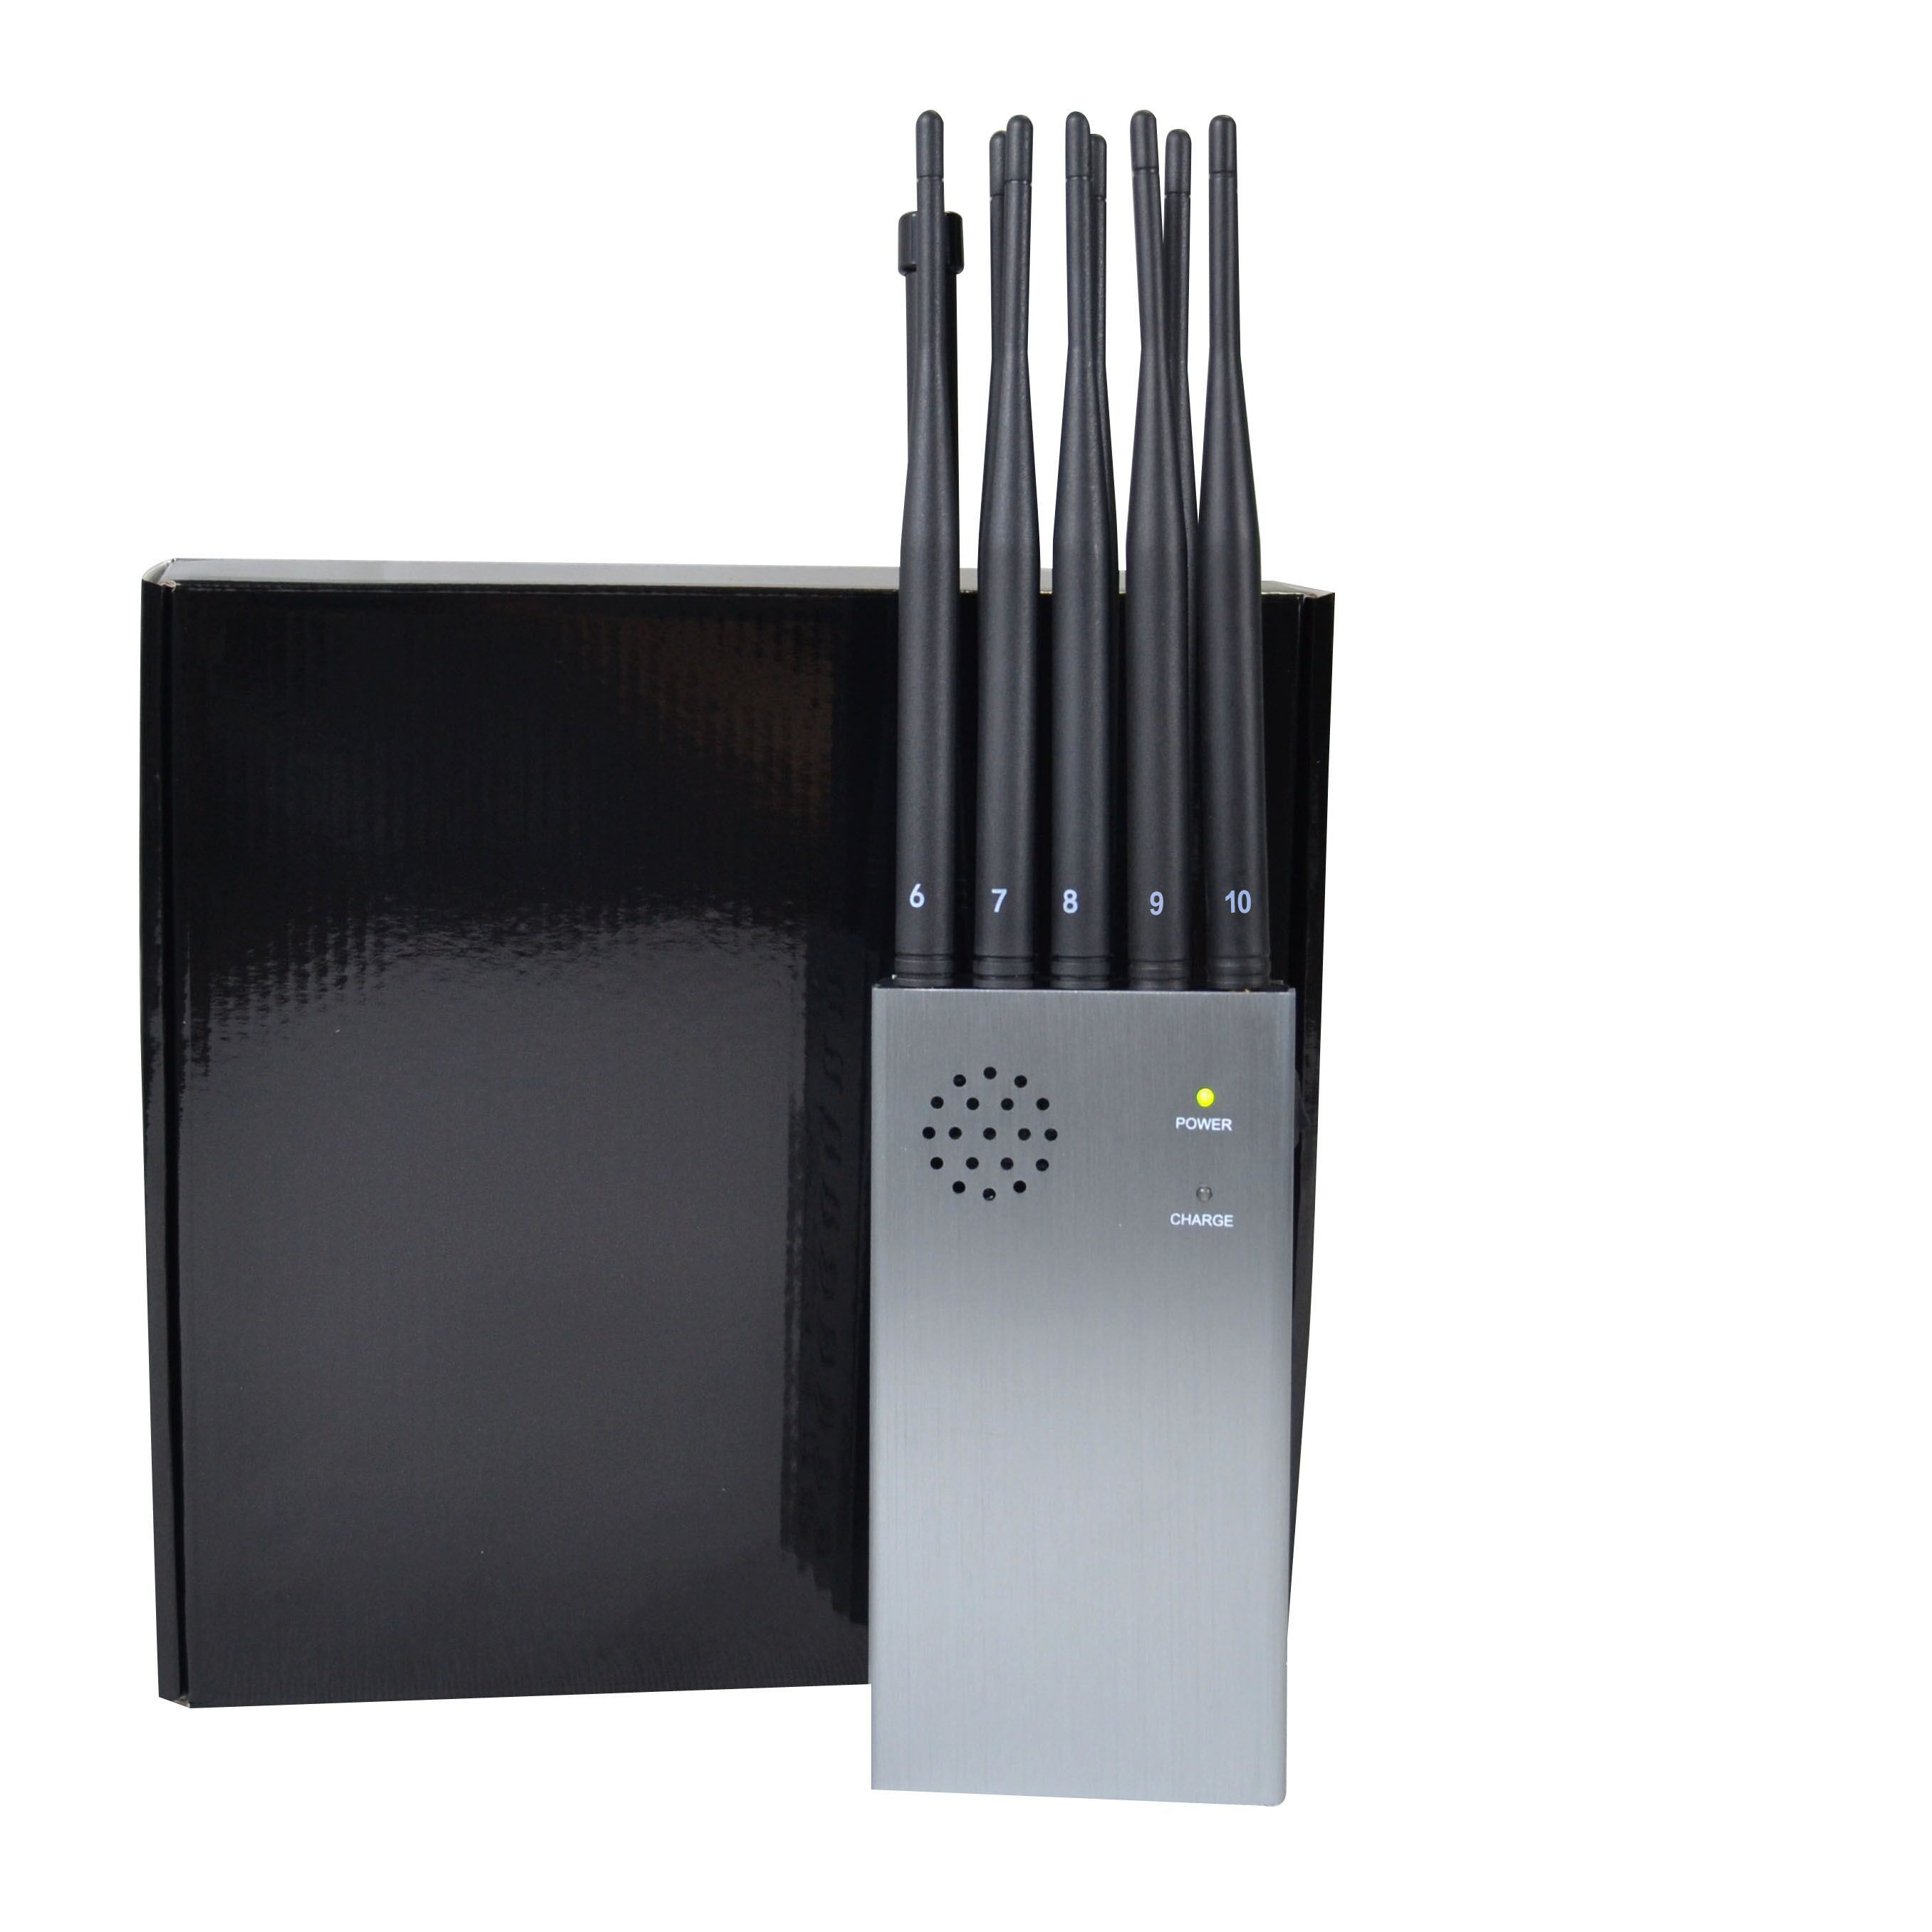 signal jammer Charlotte , China Power King Jammers of Cpjp10 with 8000mA 2g 3G 4G 5g Remote Control Jammers for 2g 3G 4G 5g Lojack - China 8000mA Battery Jammer, Large Volume Power Signal Blocker